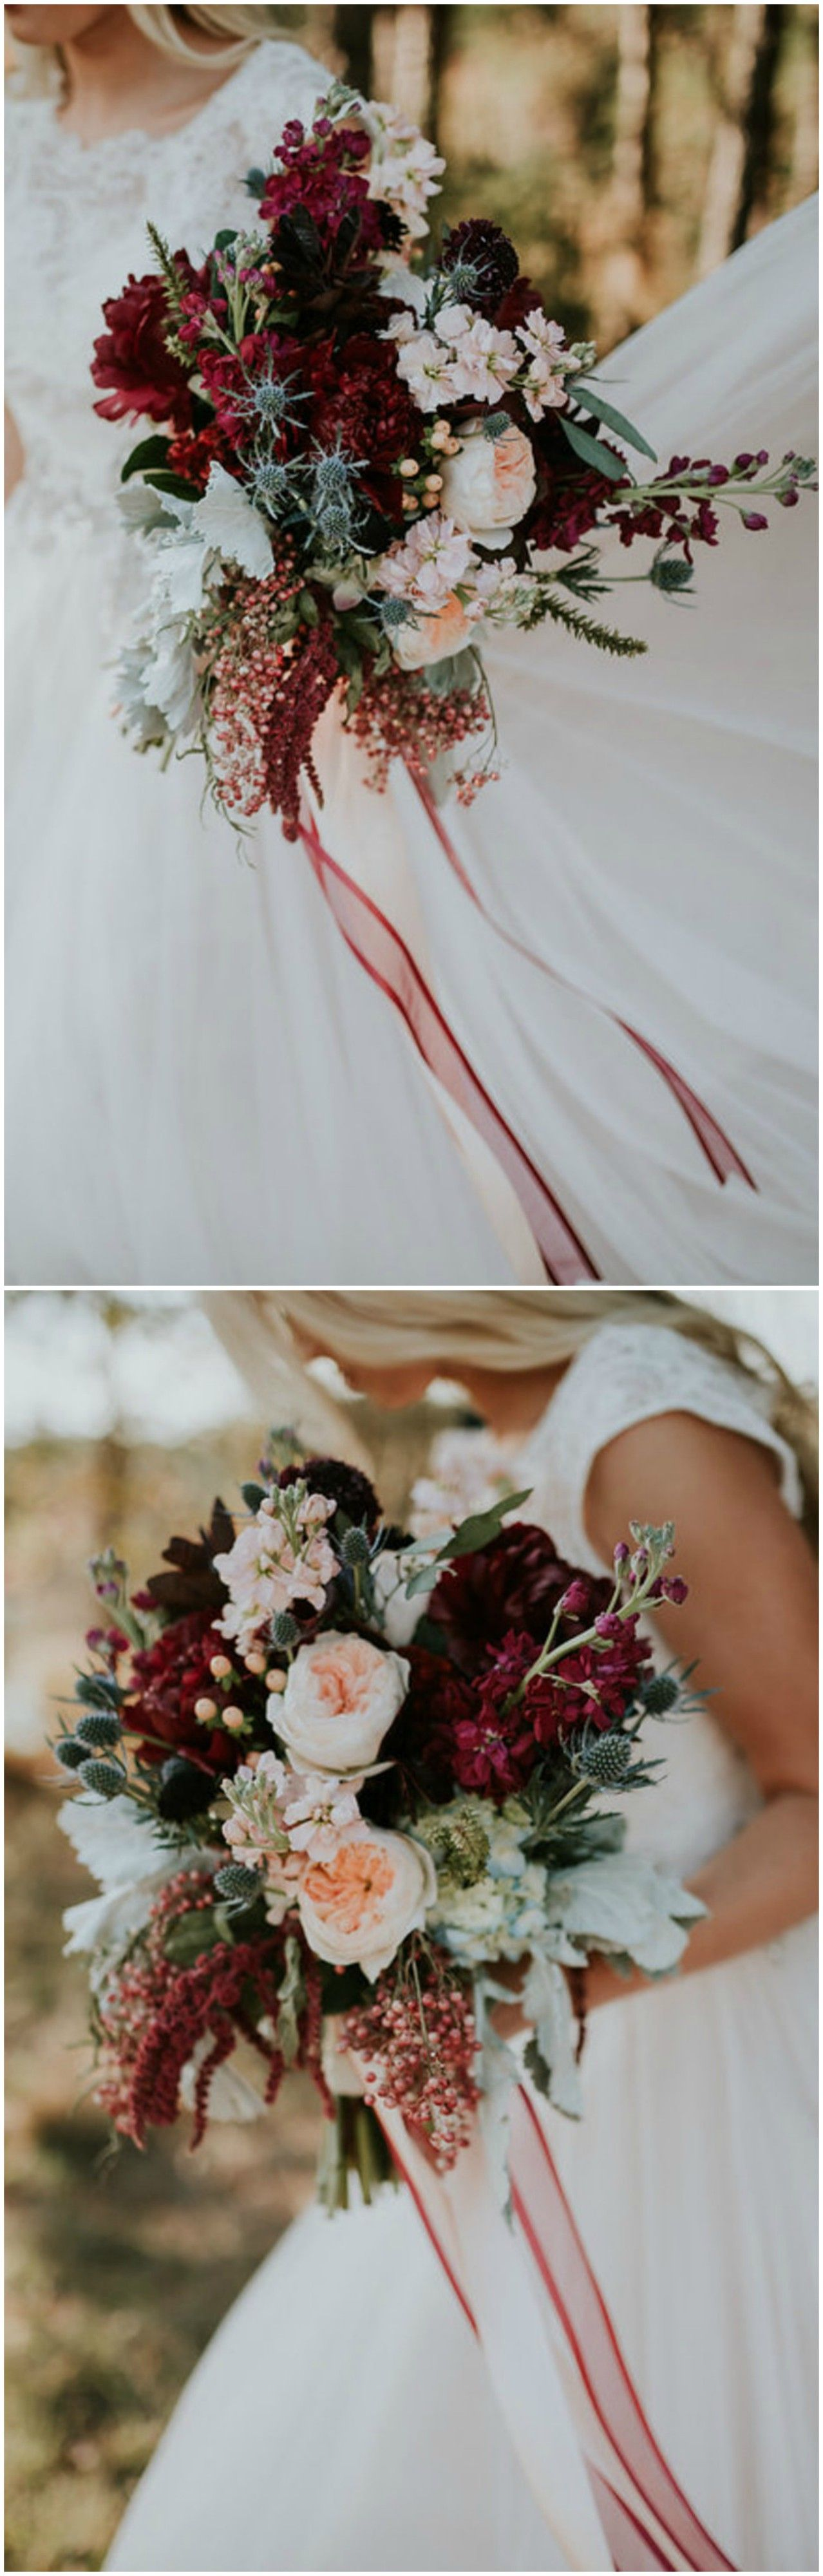 romantic wedding bouquet, peach and wine colored florals